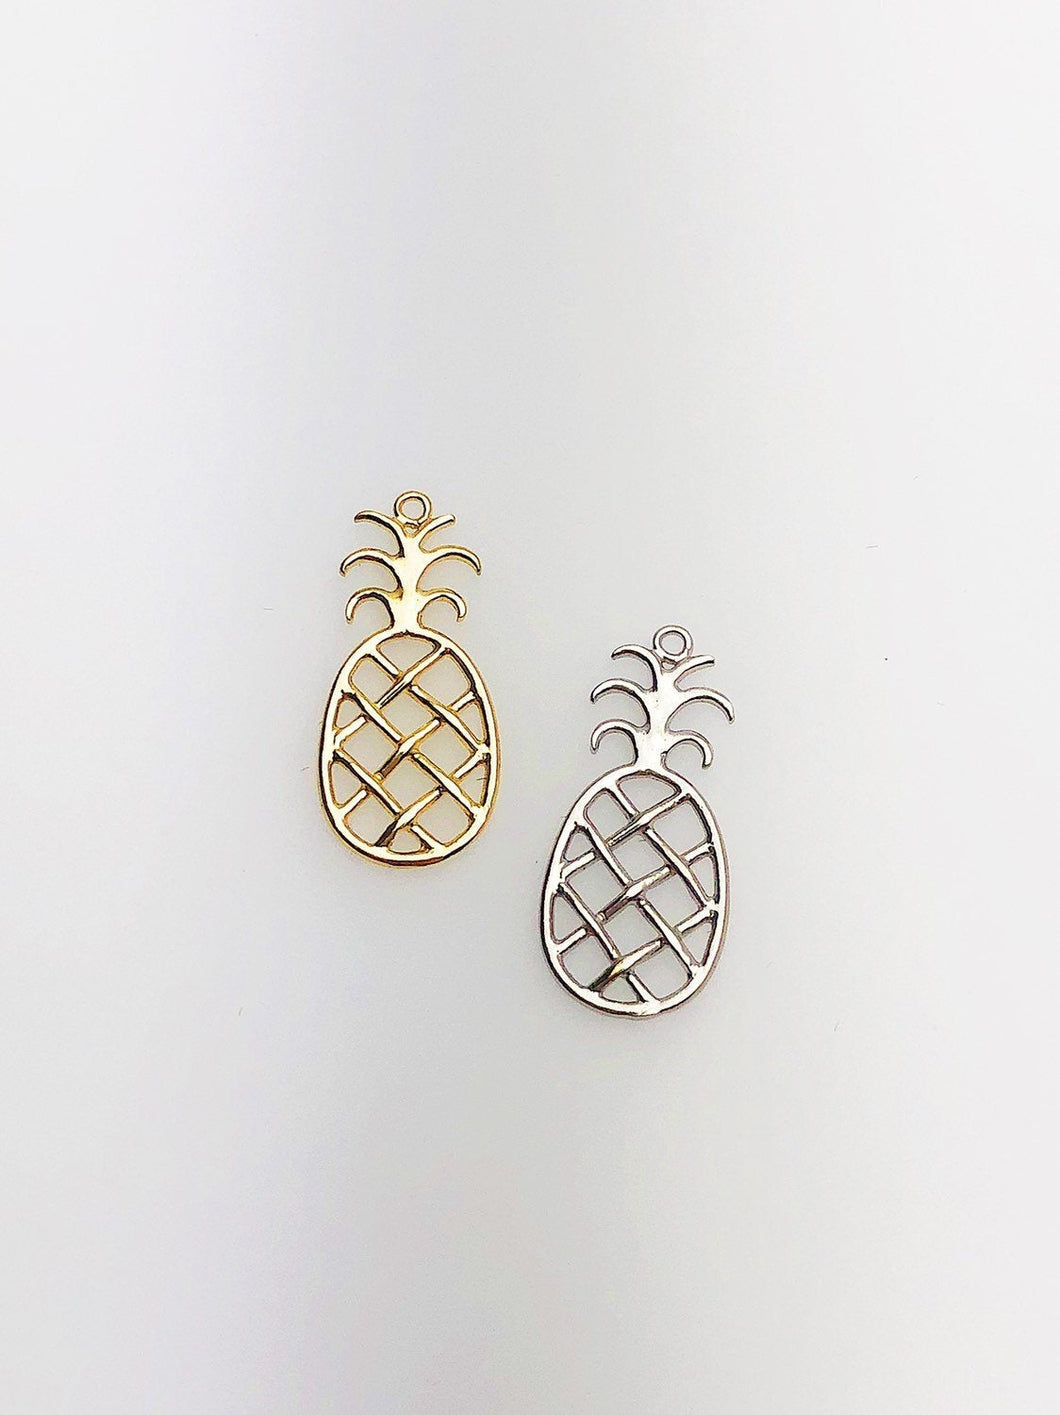 14K Solid Gold Pineapple Charm w/ Ring, 8.9x19.8mm, Made in USA (L-84)